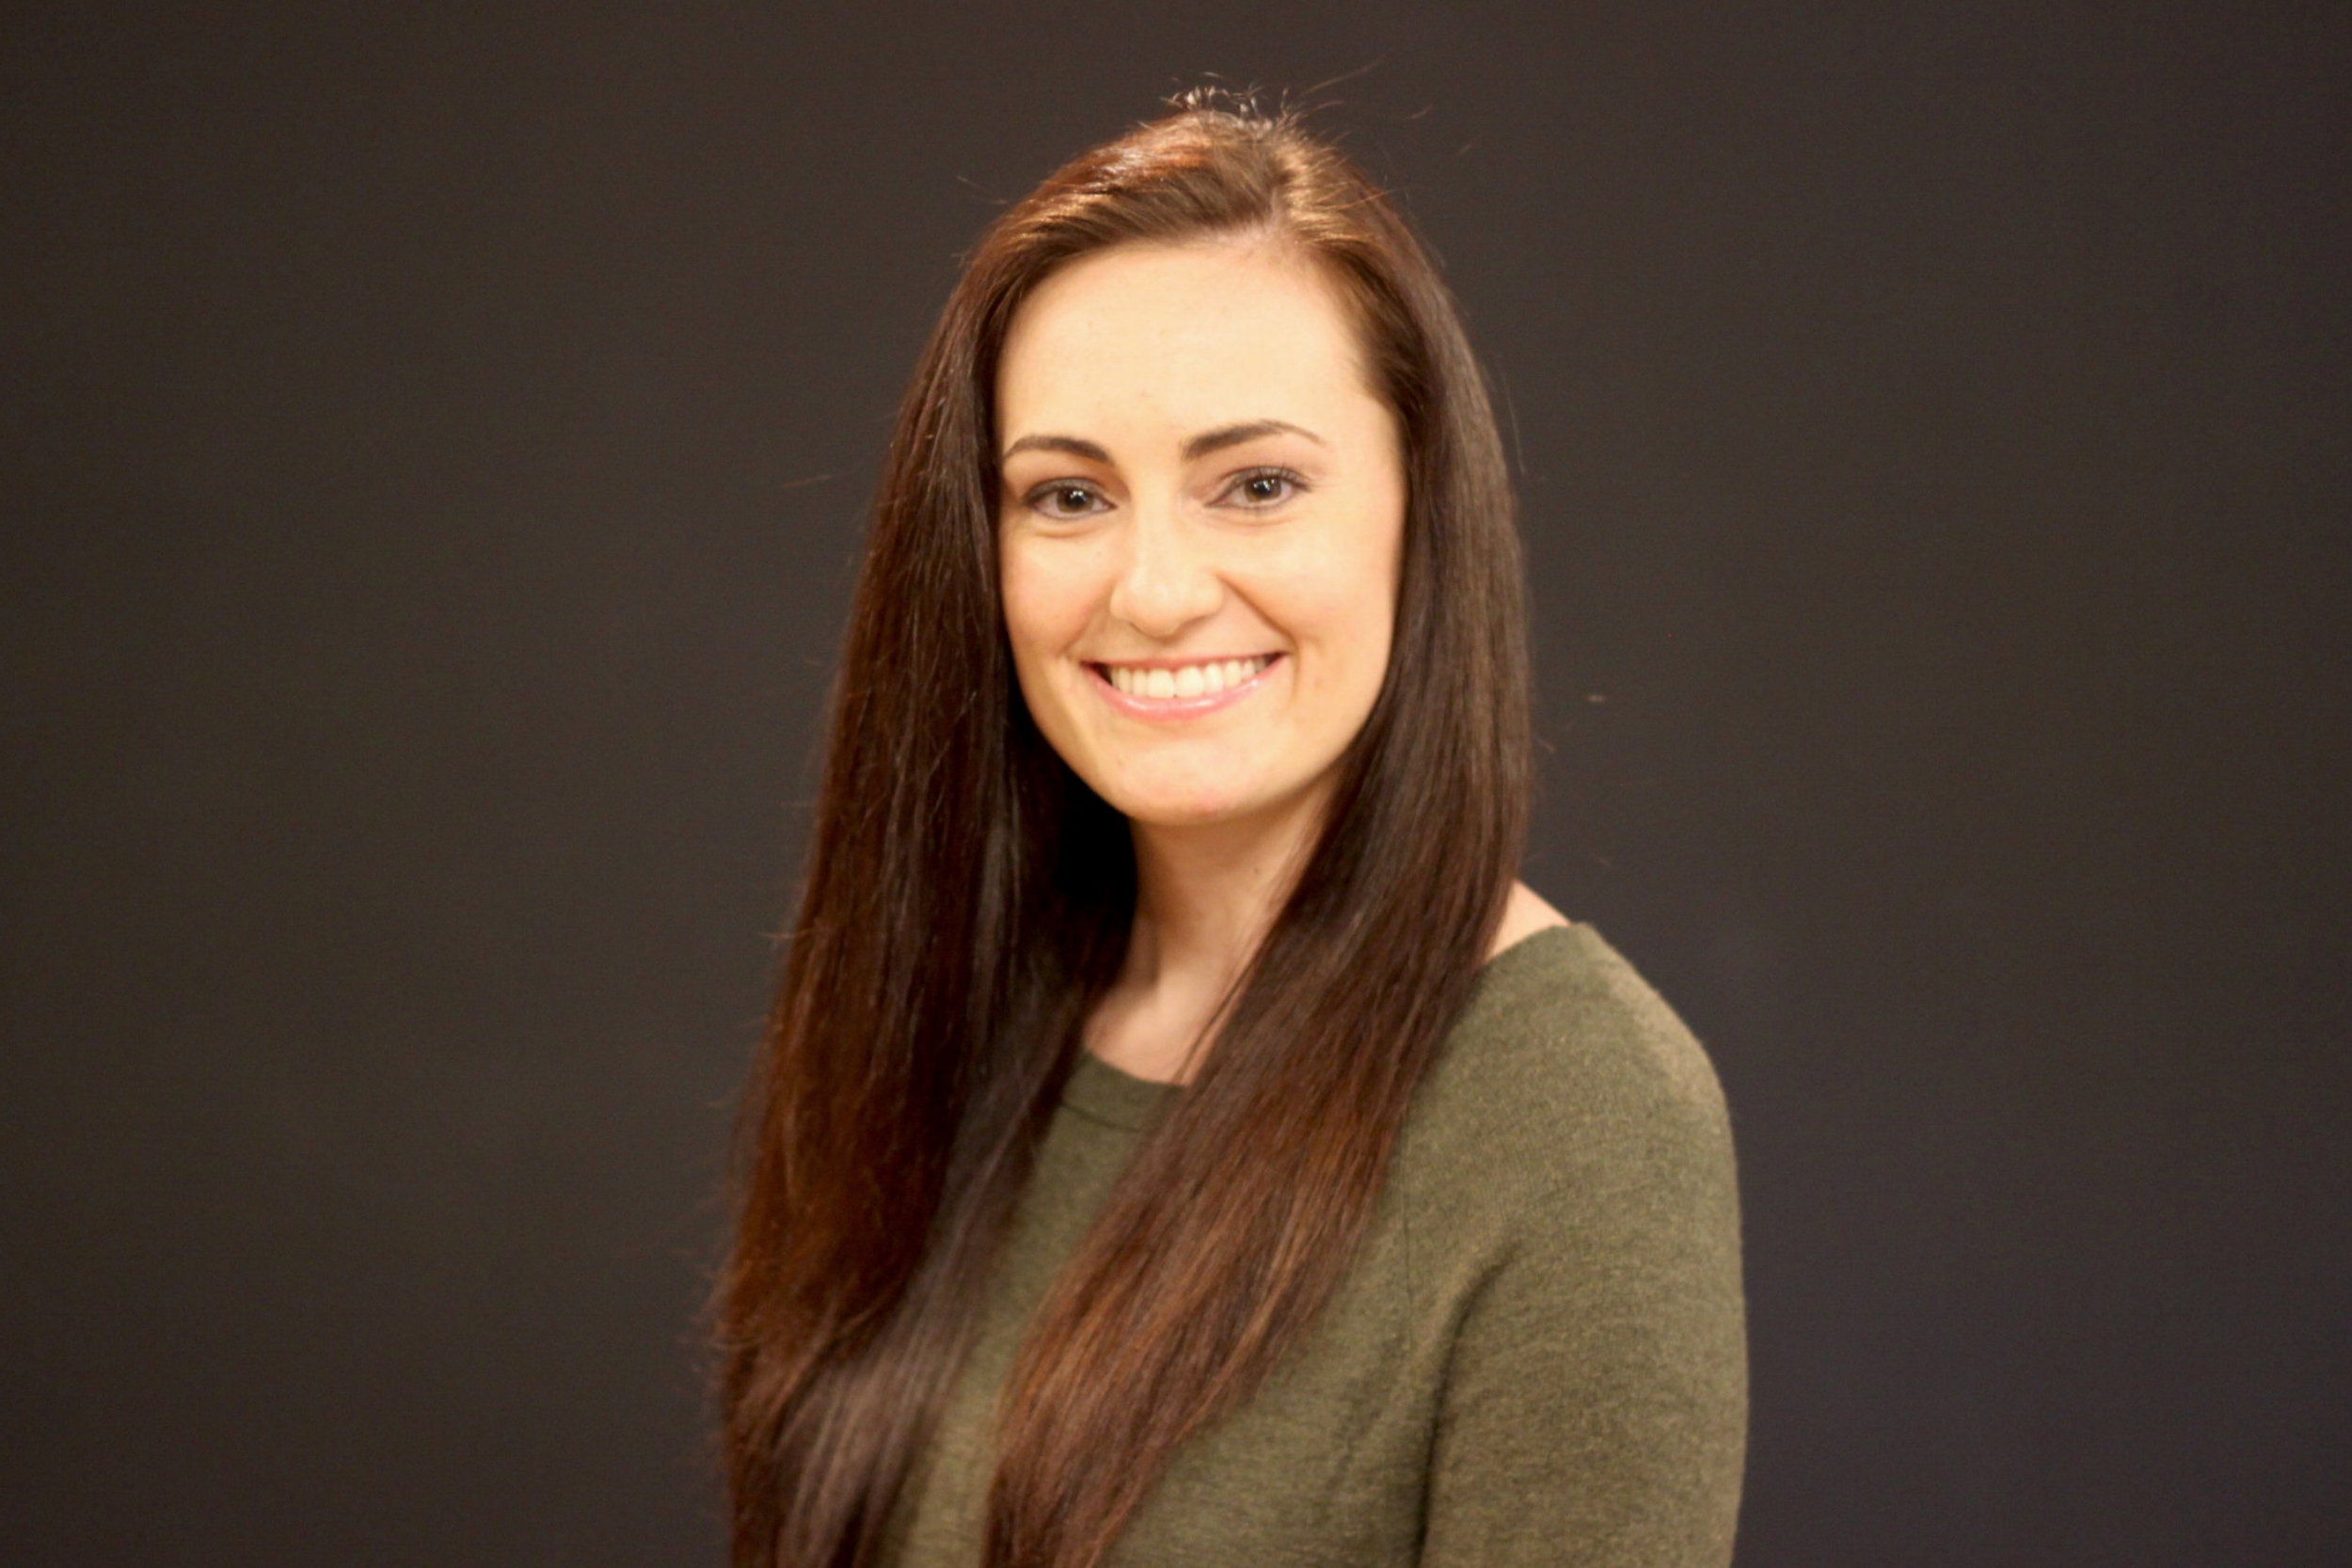 JACLYN MCCOY - Jackie is from Rhode island and presently living and working in New York City. She has contributed to Margolis Method Online, and is about to complete her Level I Professional Certification.